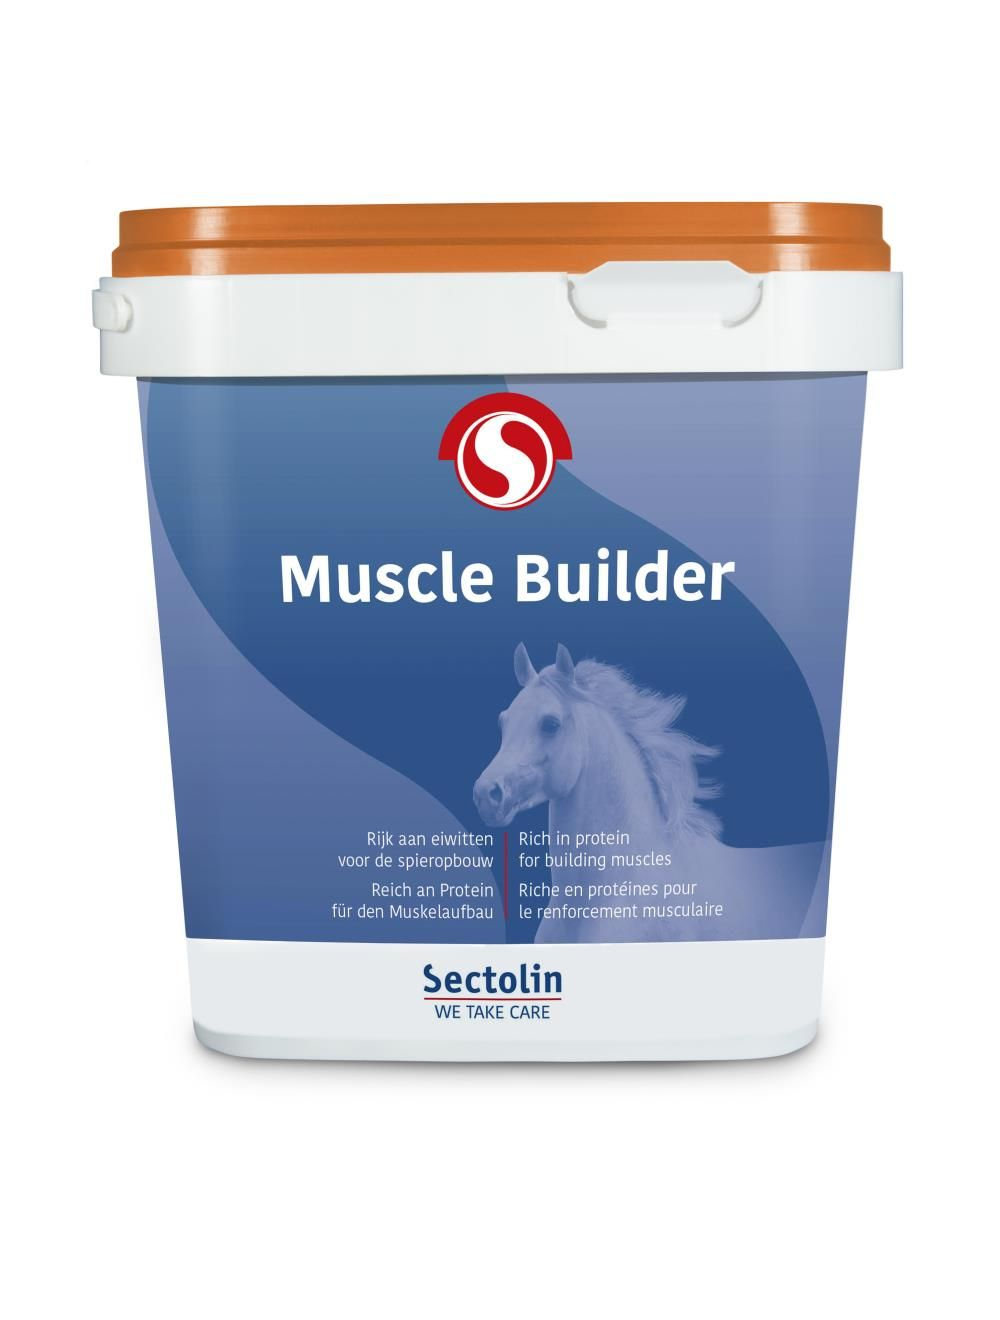 Sectolin Muscle Builder Ruitersport Veendam